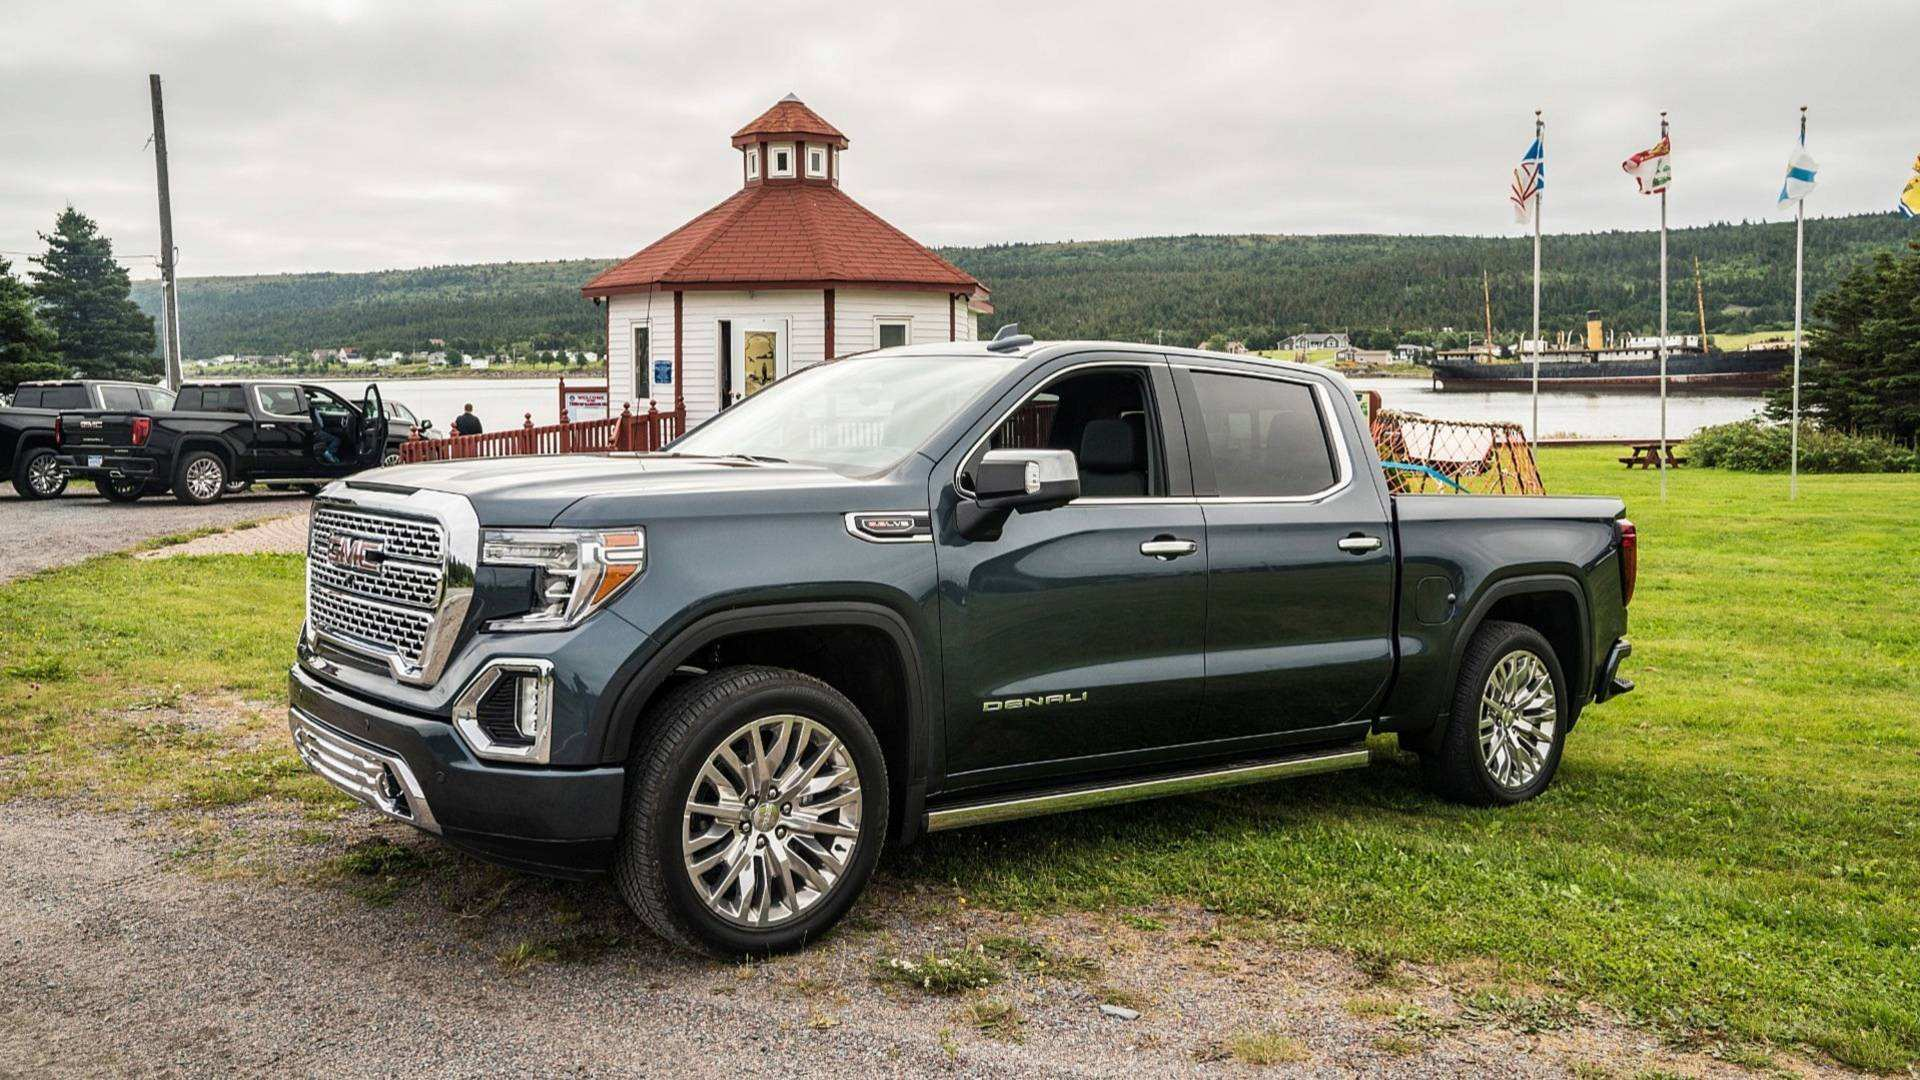 80 Best Review 2019 Gmc Inline 6 Diesel Engine by 2019 Gmc Inline 6 Diesel